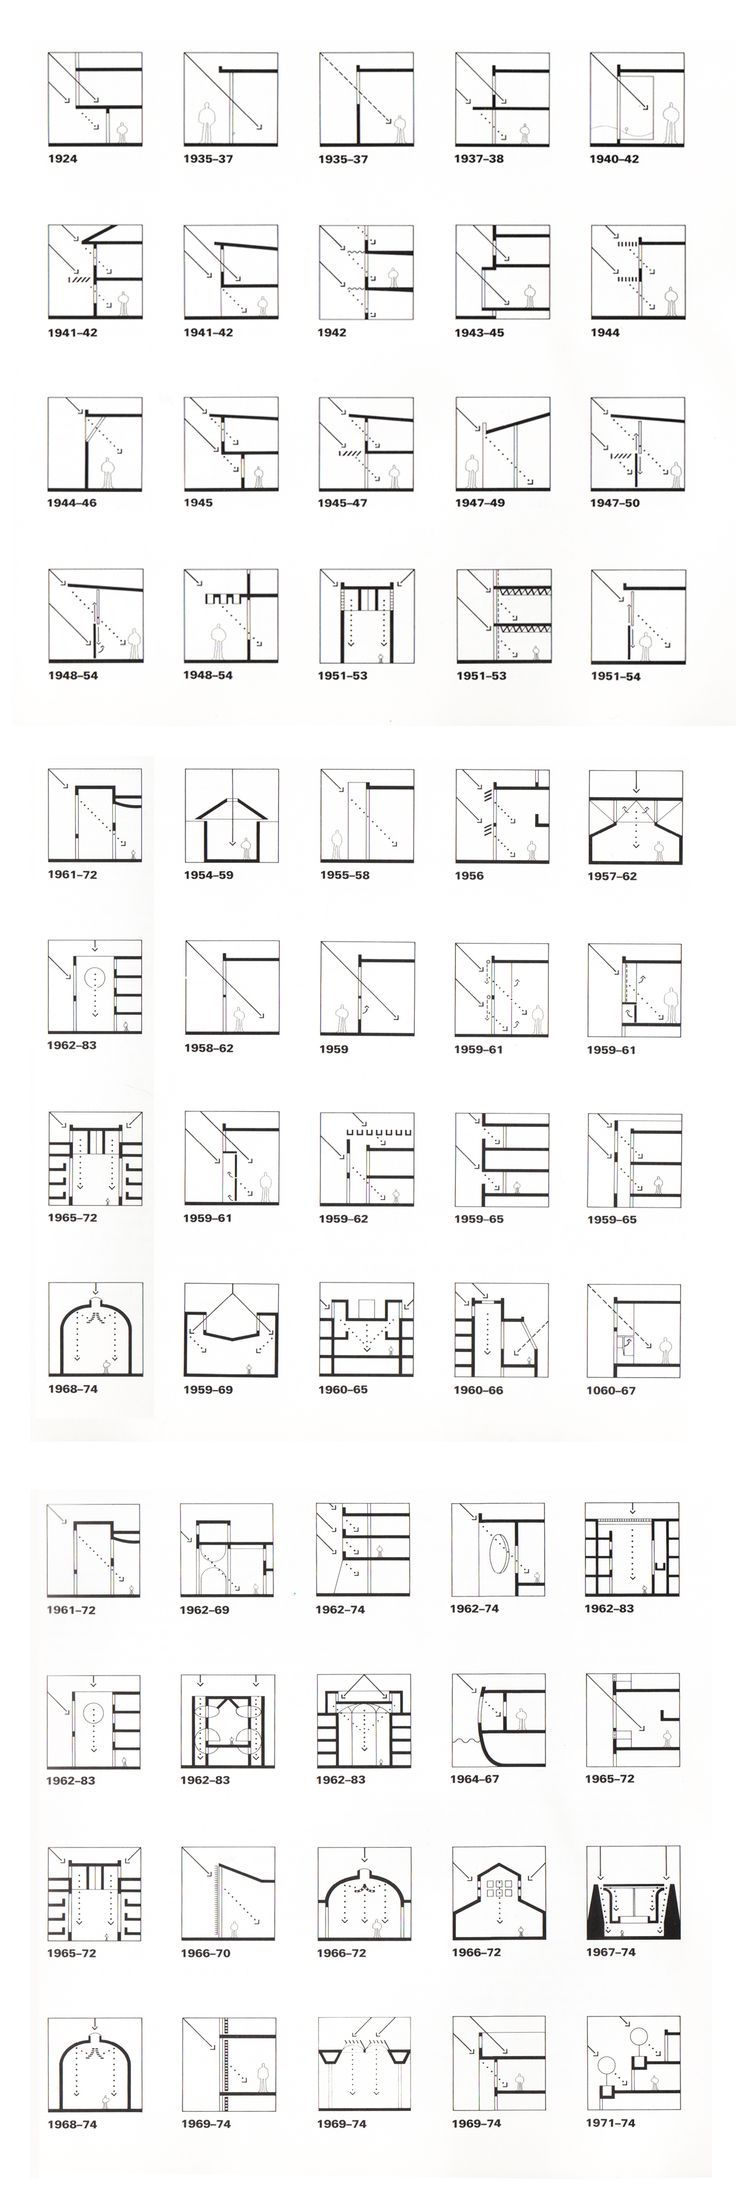 "Louis Kahn (from ""Licht und Raum- light and space"", Urs Büttiker) The chronological listing of projects traces Kahn's development process in light control and modulation. Projects beginning with student work from 1924 and ending with the Berkeley library from 1971-1974 reveal an extraordinary broad spectrum of solutions for the design of light and space. Kahn's struggle to find the coherent answer for each architectural challenge remains the basic principle characterizing his complete work."